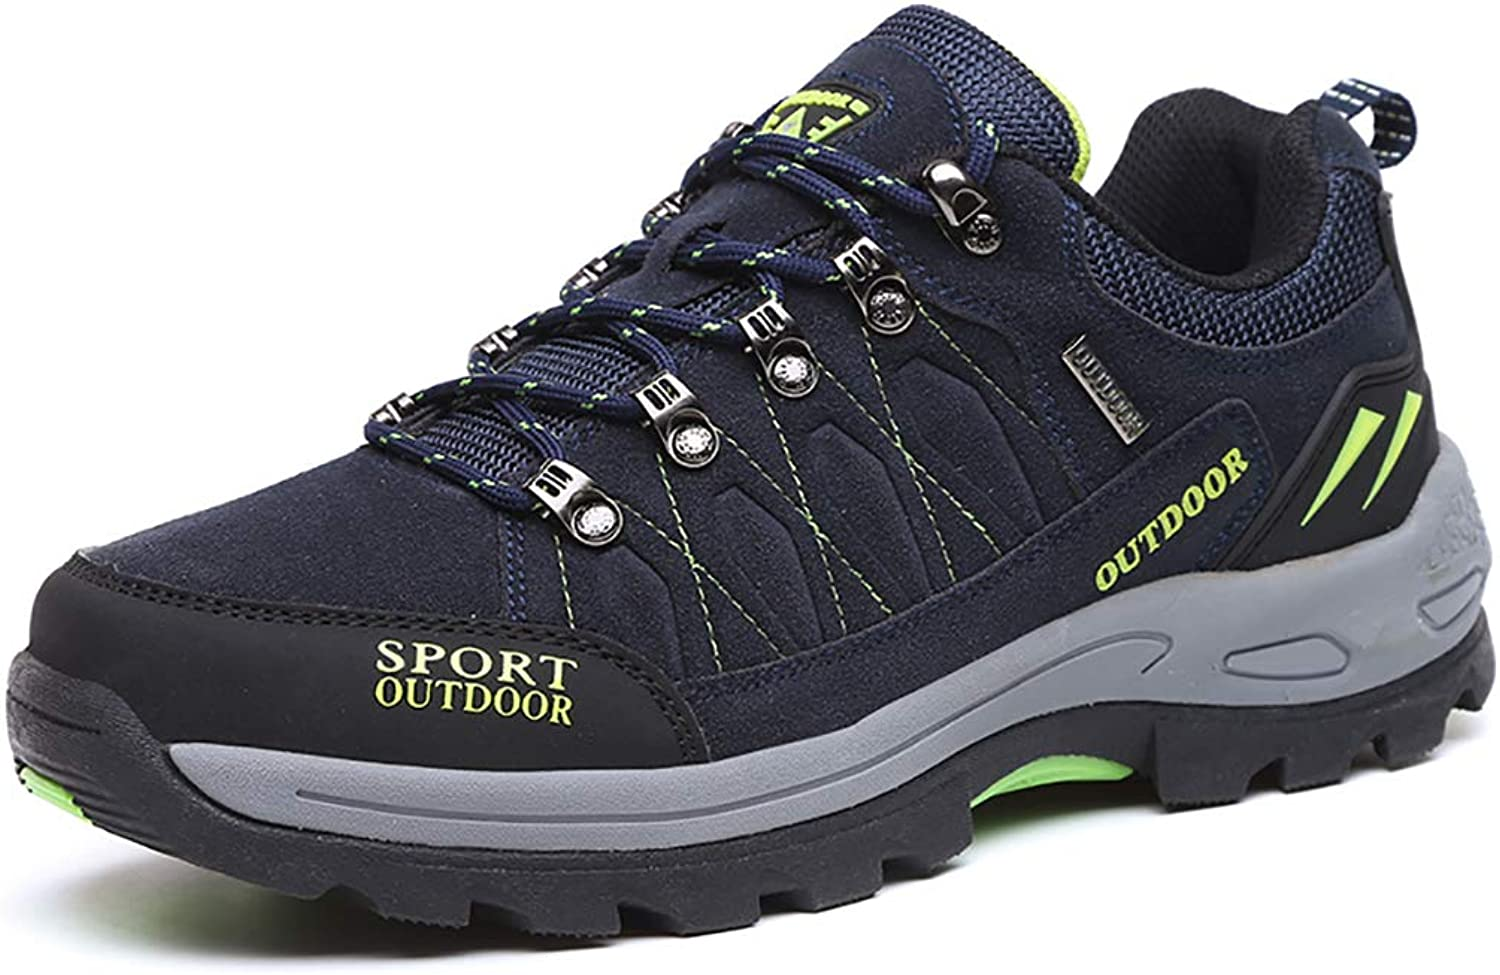 LXJL Men's hiking shoes non-slip sneakers hiking boots suede leather waterproof breathable lightweight shoes hiking running rock climbing outdoor,b,45